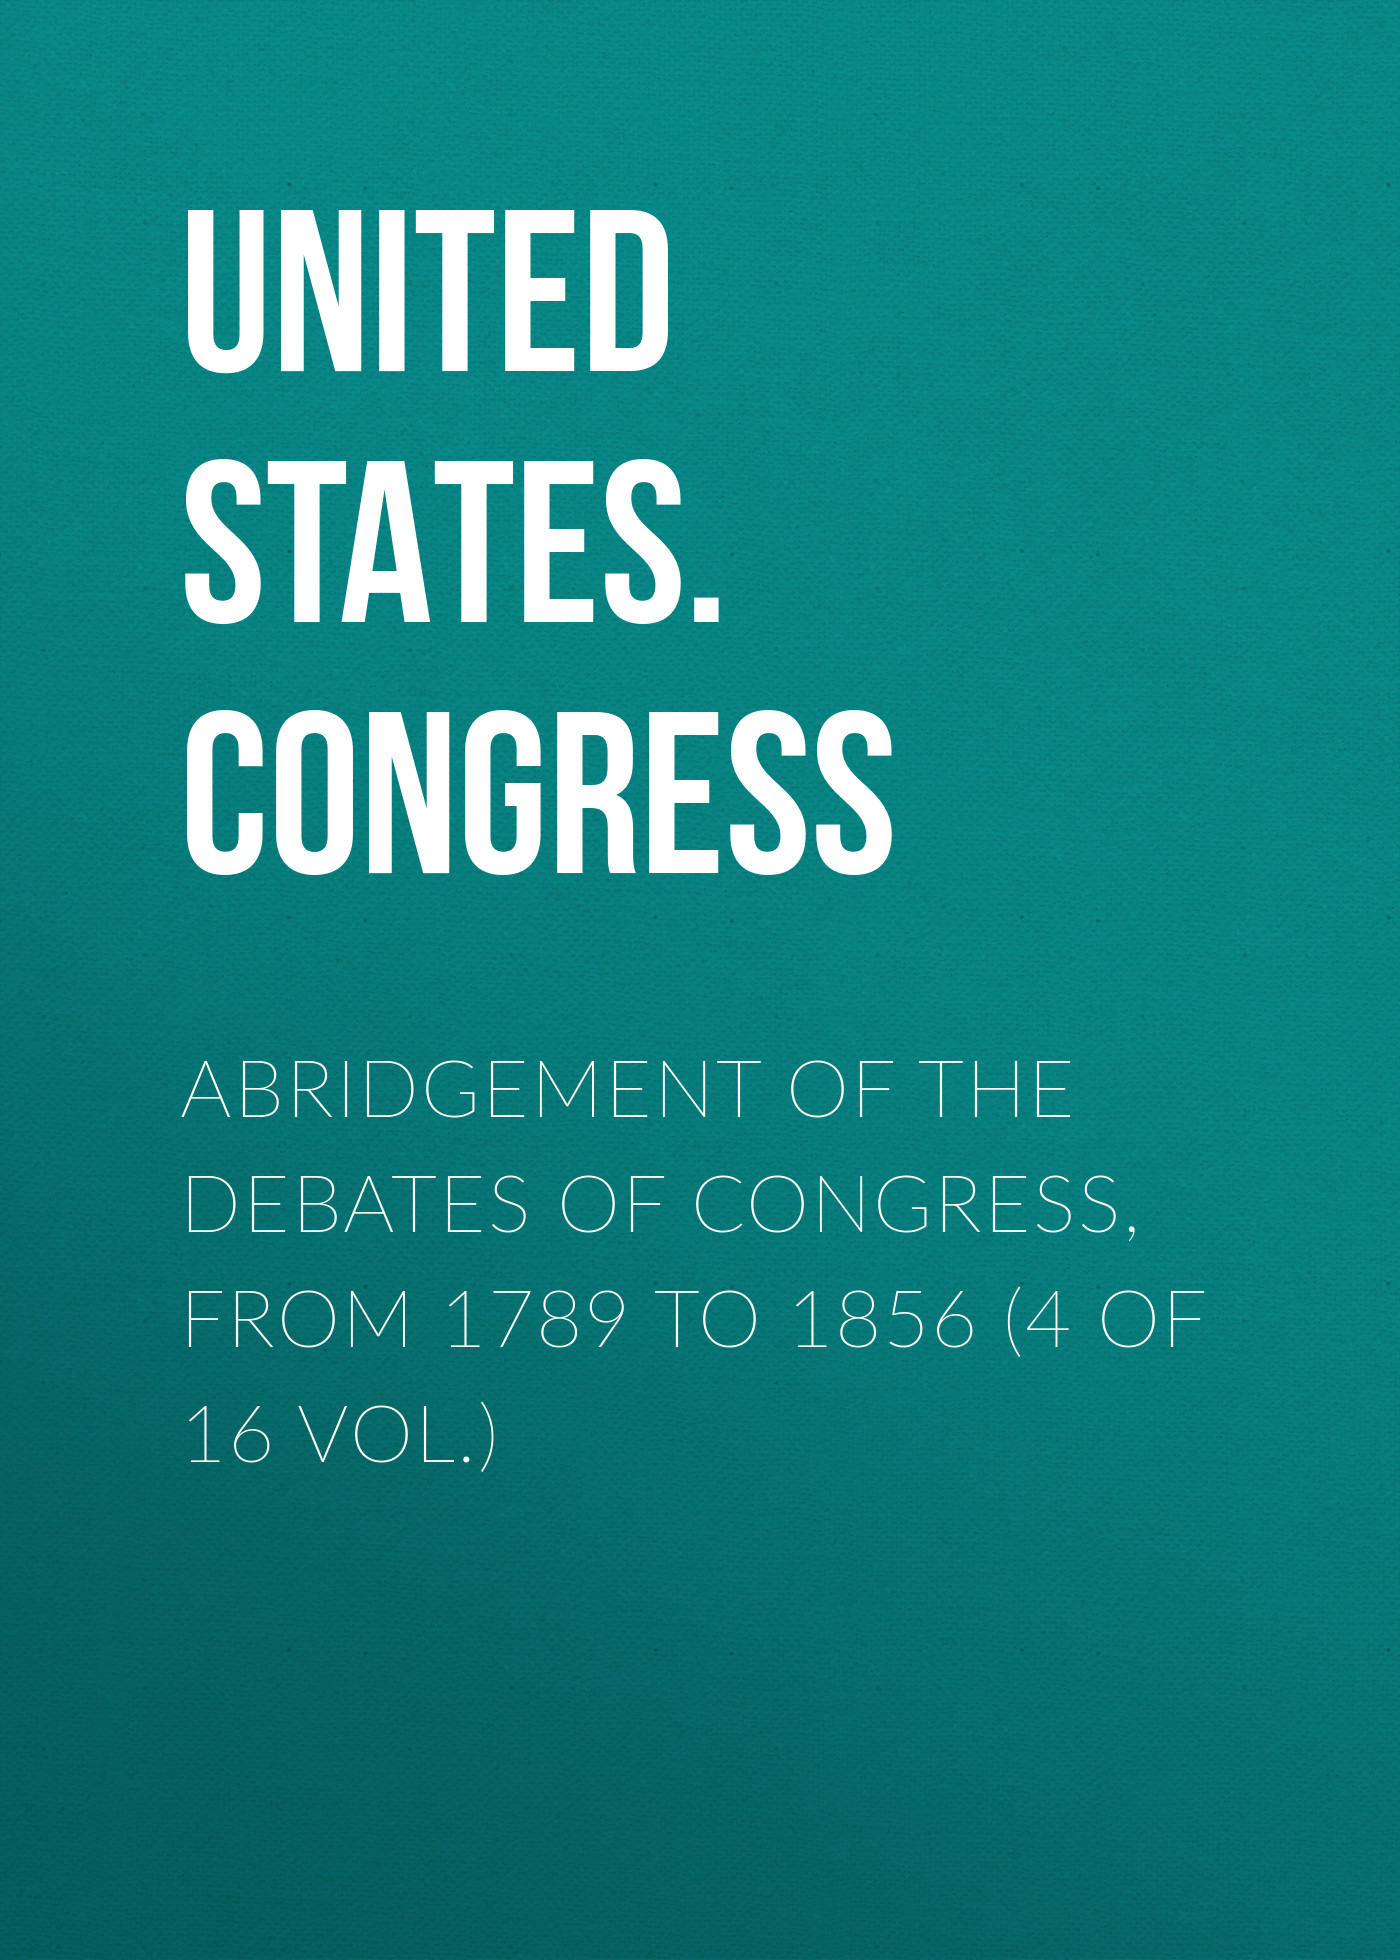 United States. Congress Abridgement of the Debates of Congress, from 1789 to 1856 (4 of 16 vol.) united states congress abridgement of the debates of congress from 1789 to 1856 4 of 16 vol